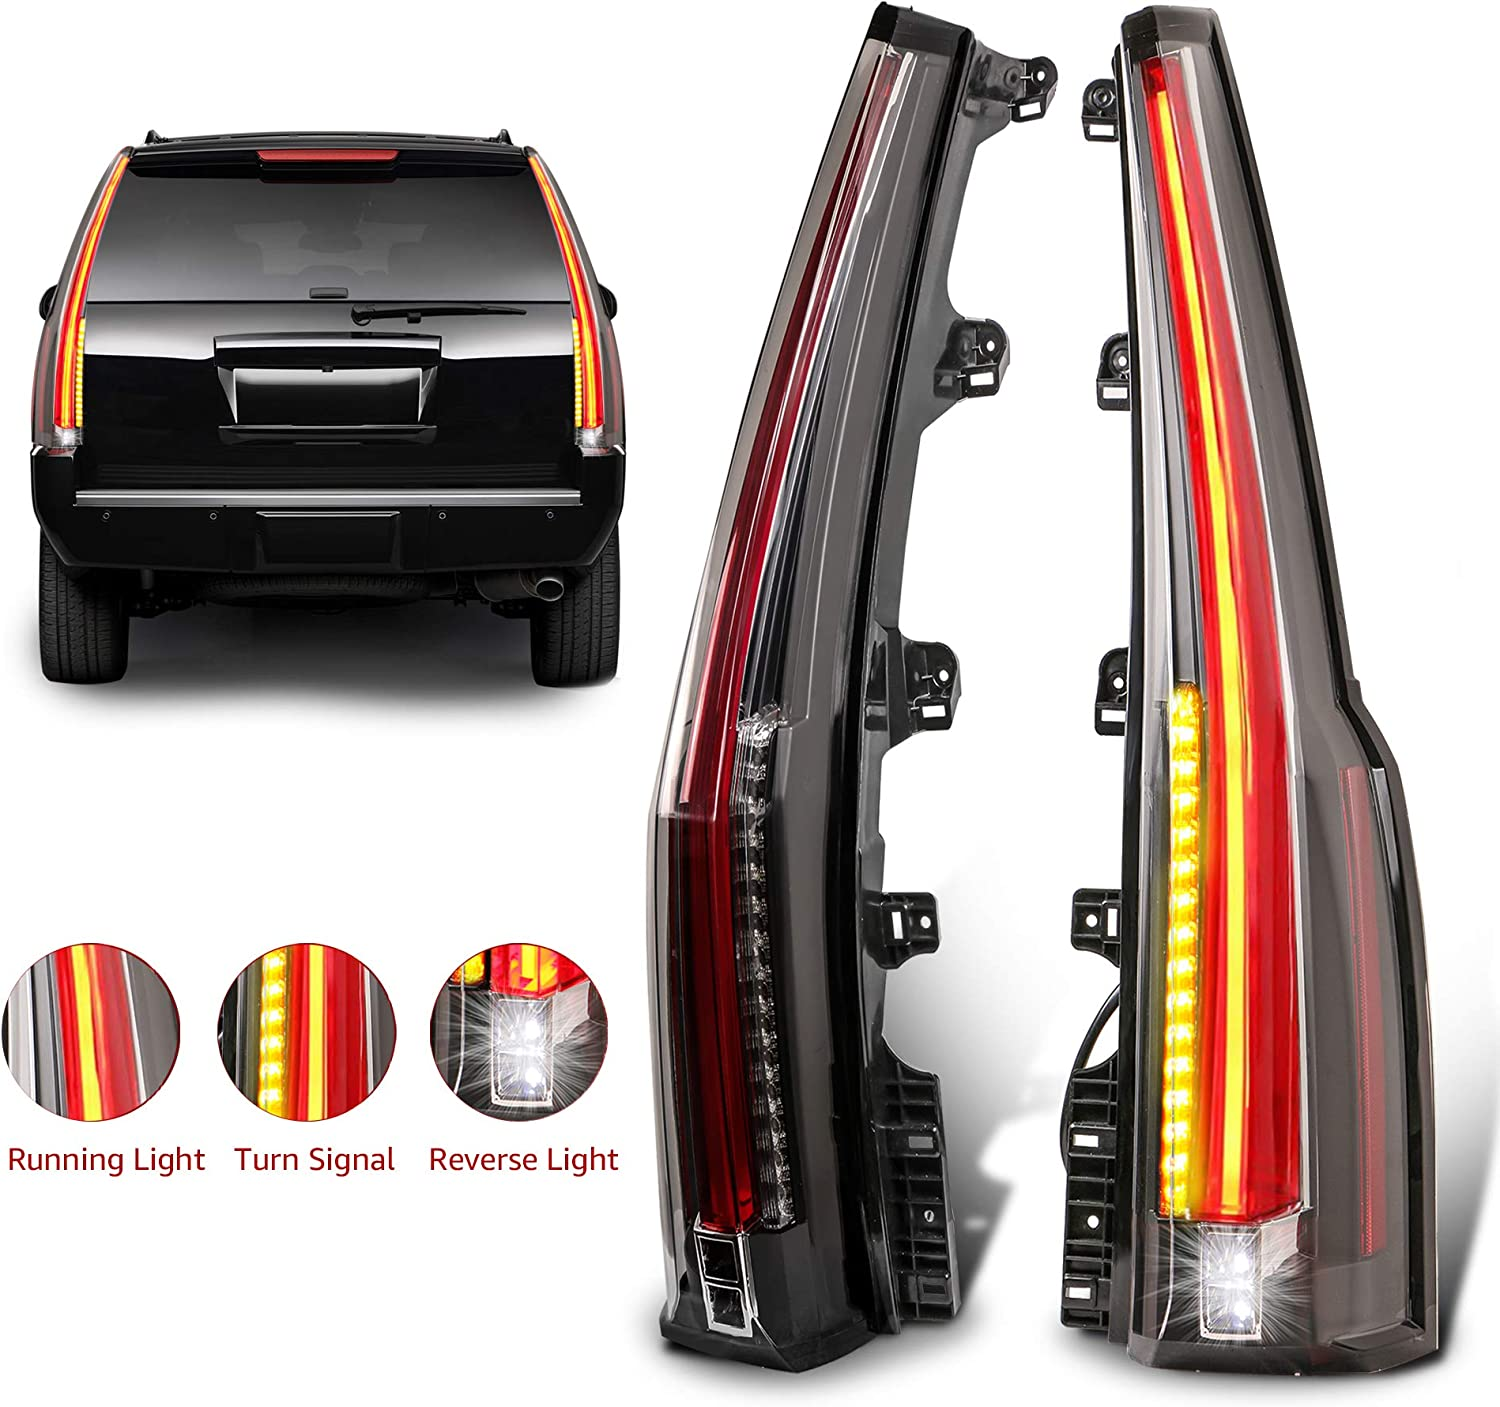 VLAND Tail Lights Assembly Compatible for GMC Yukon Chevrolet Tahoe//Suburban 2007-2014 LED Tail Lamp LED DRL Light Plug-and-Play Clear